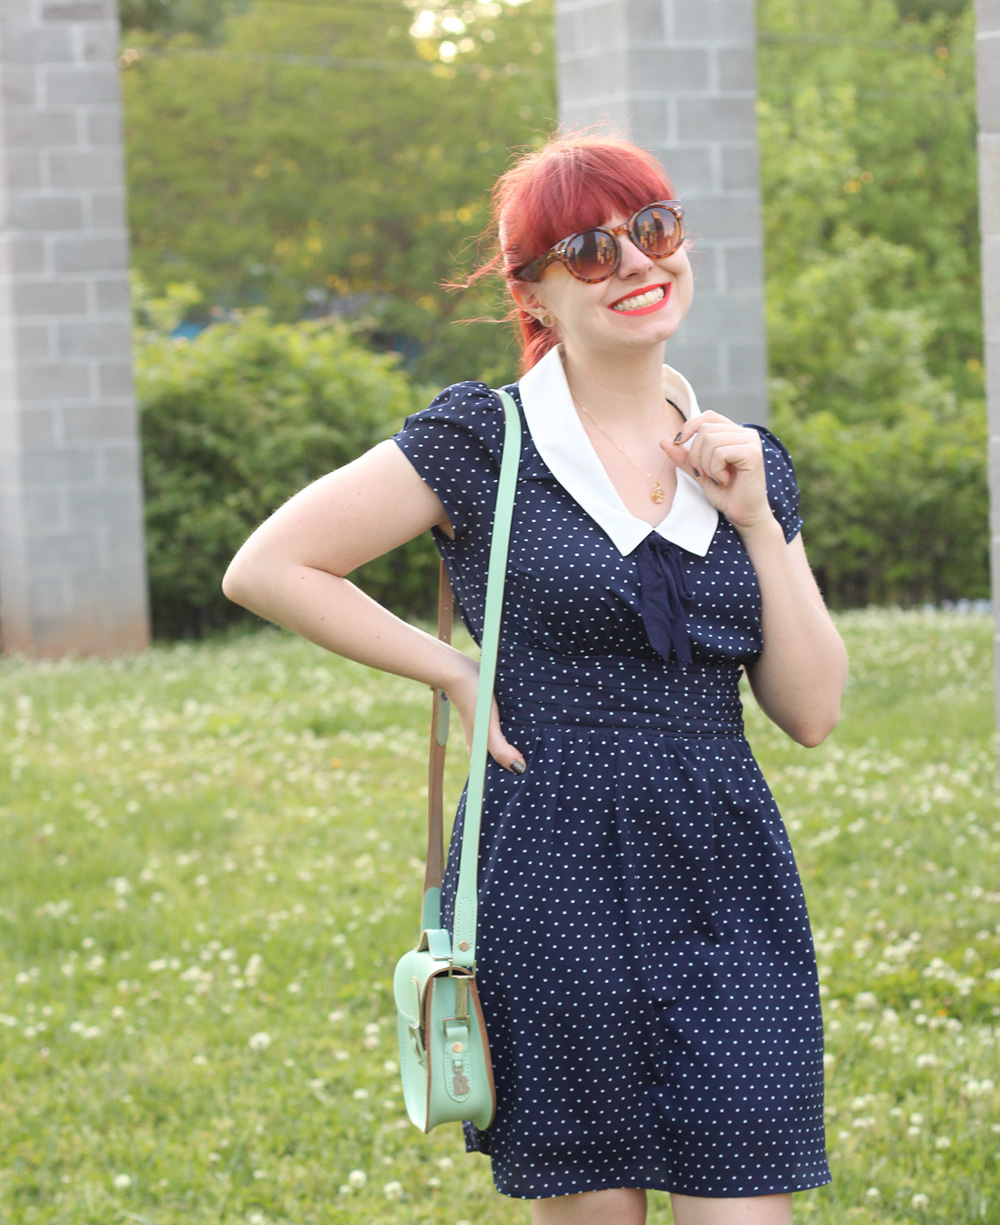 White Pointed Collar, Dark Blue Polka Dot Dress from F21, Brown Sunglasses for Spring